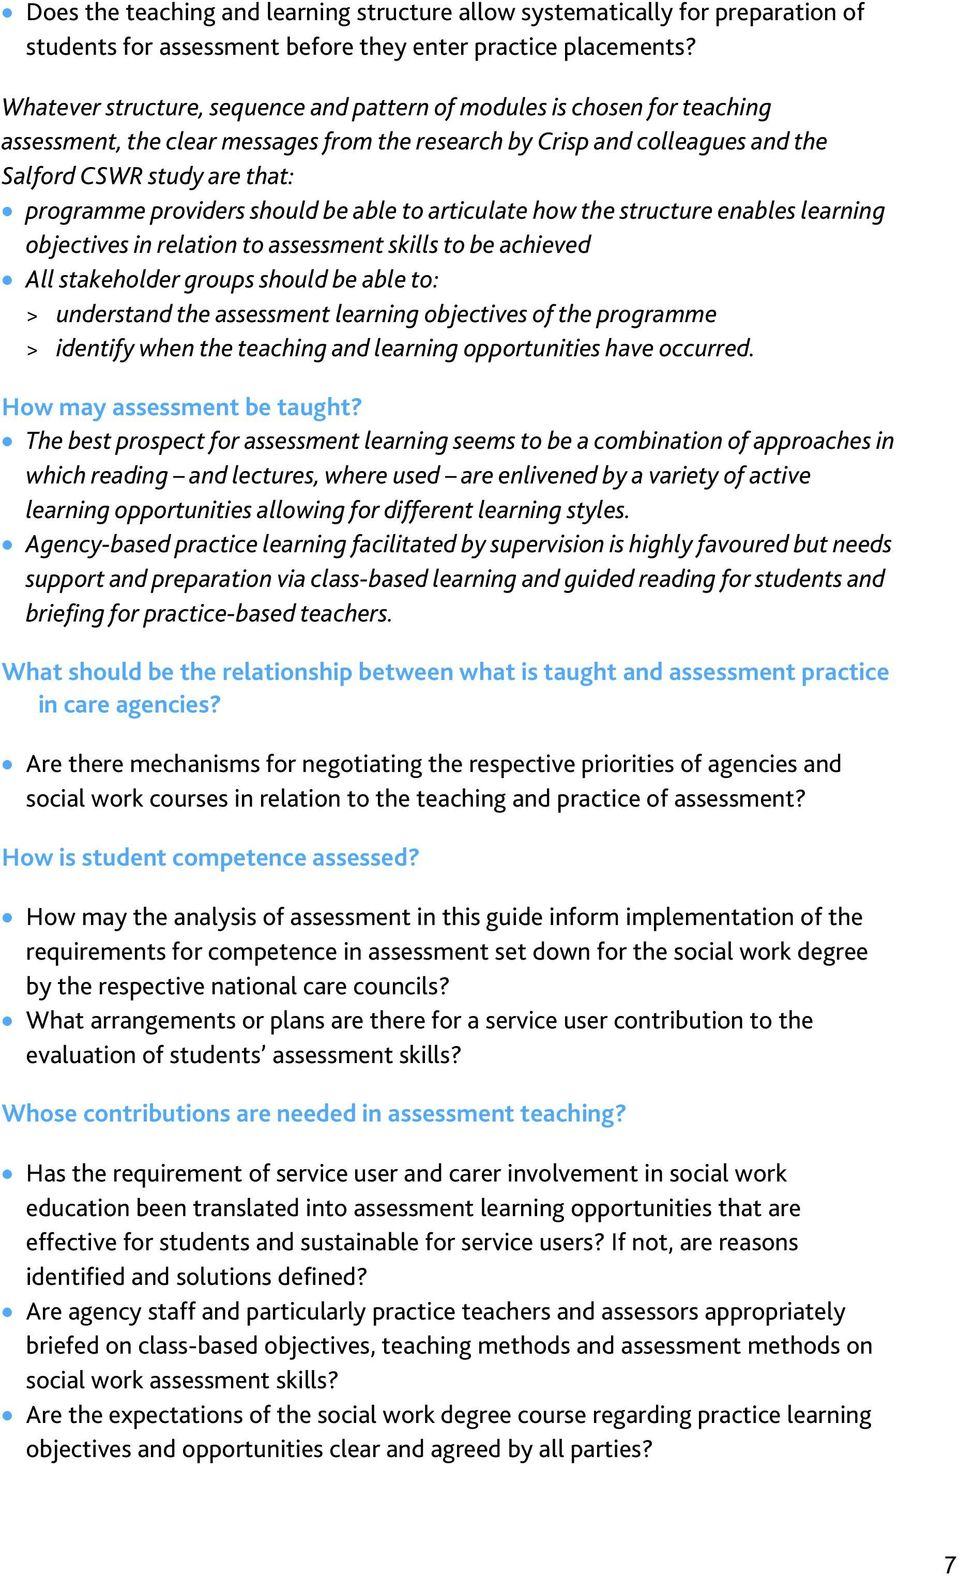 providers should be able to articulate how the structure enables learning objectives in relation to assessment skills to be achieved All stakeholder groups should be able to: > understand the